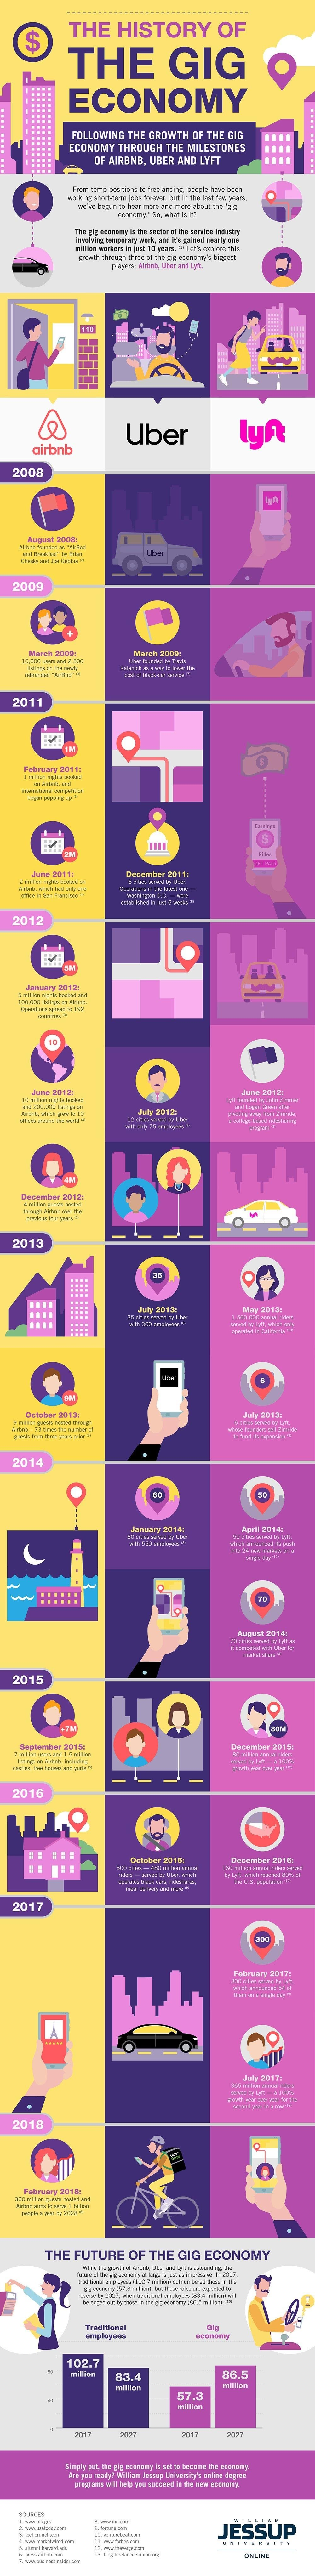 The Gig Economy: Past, Present, and Future #infographic